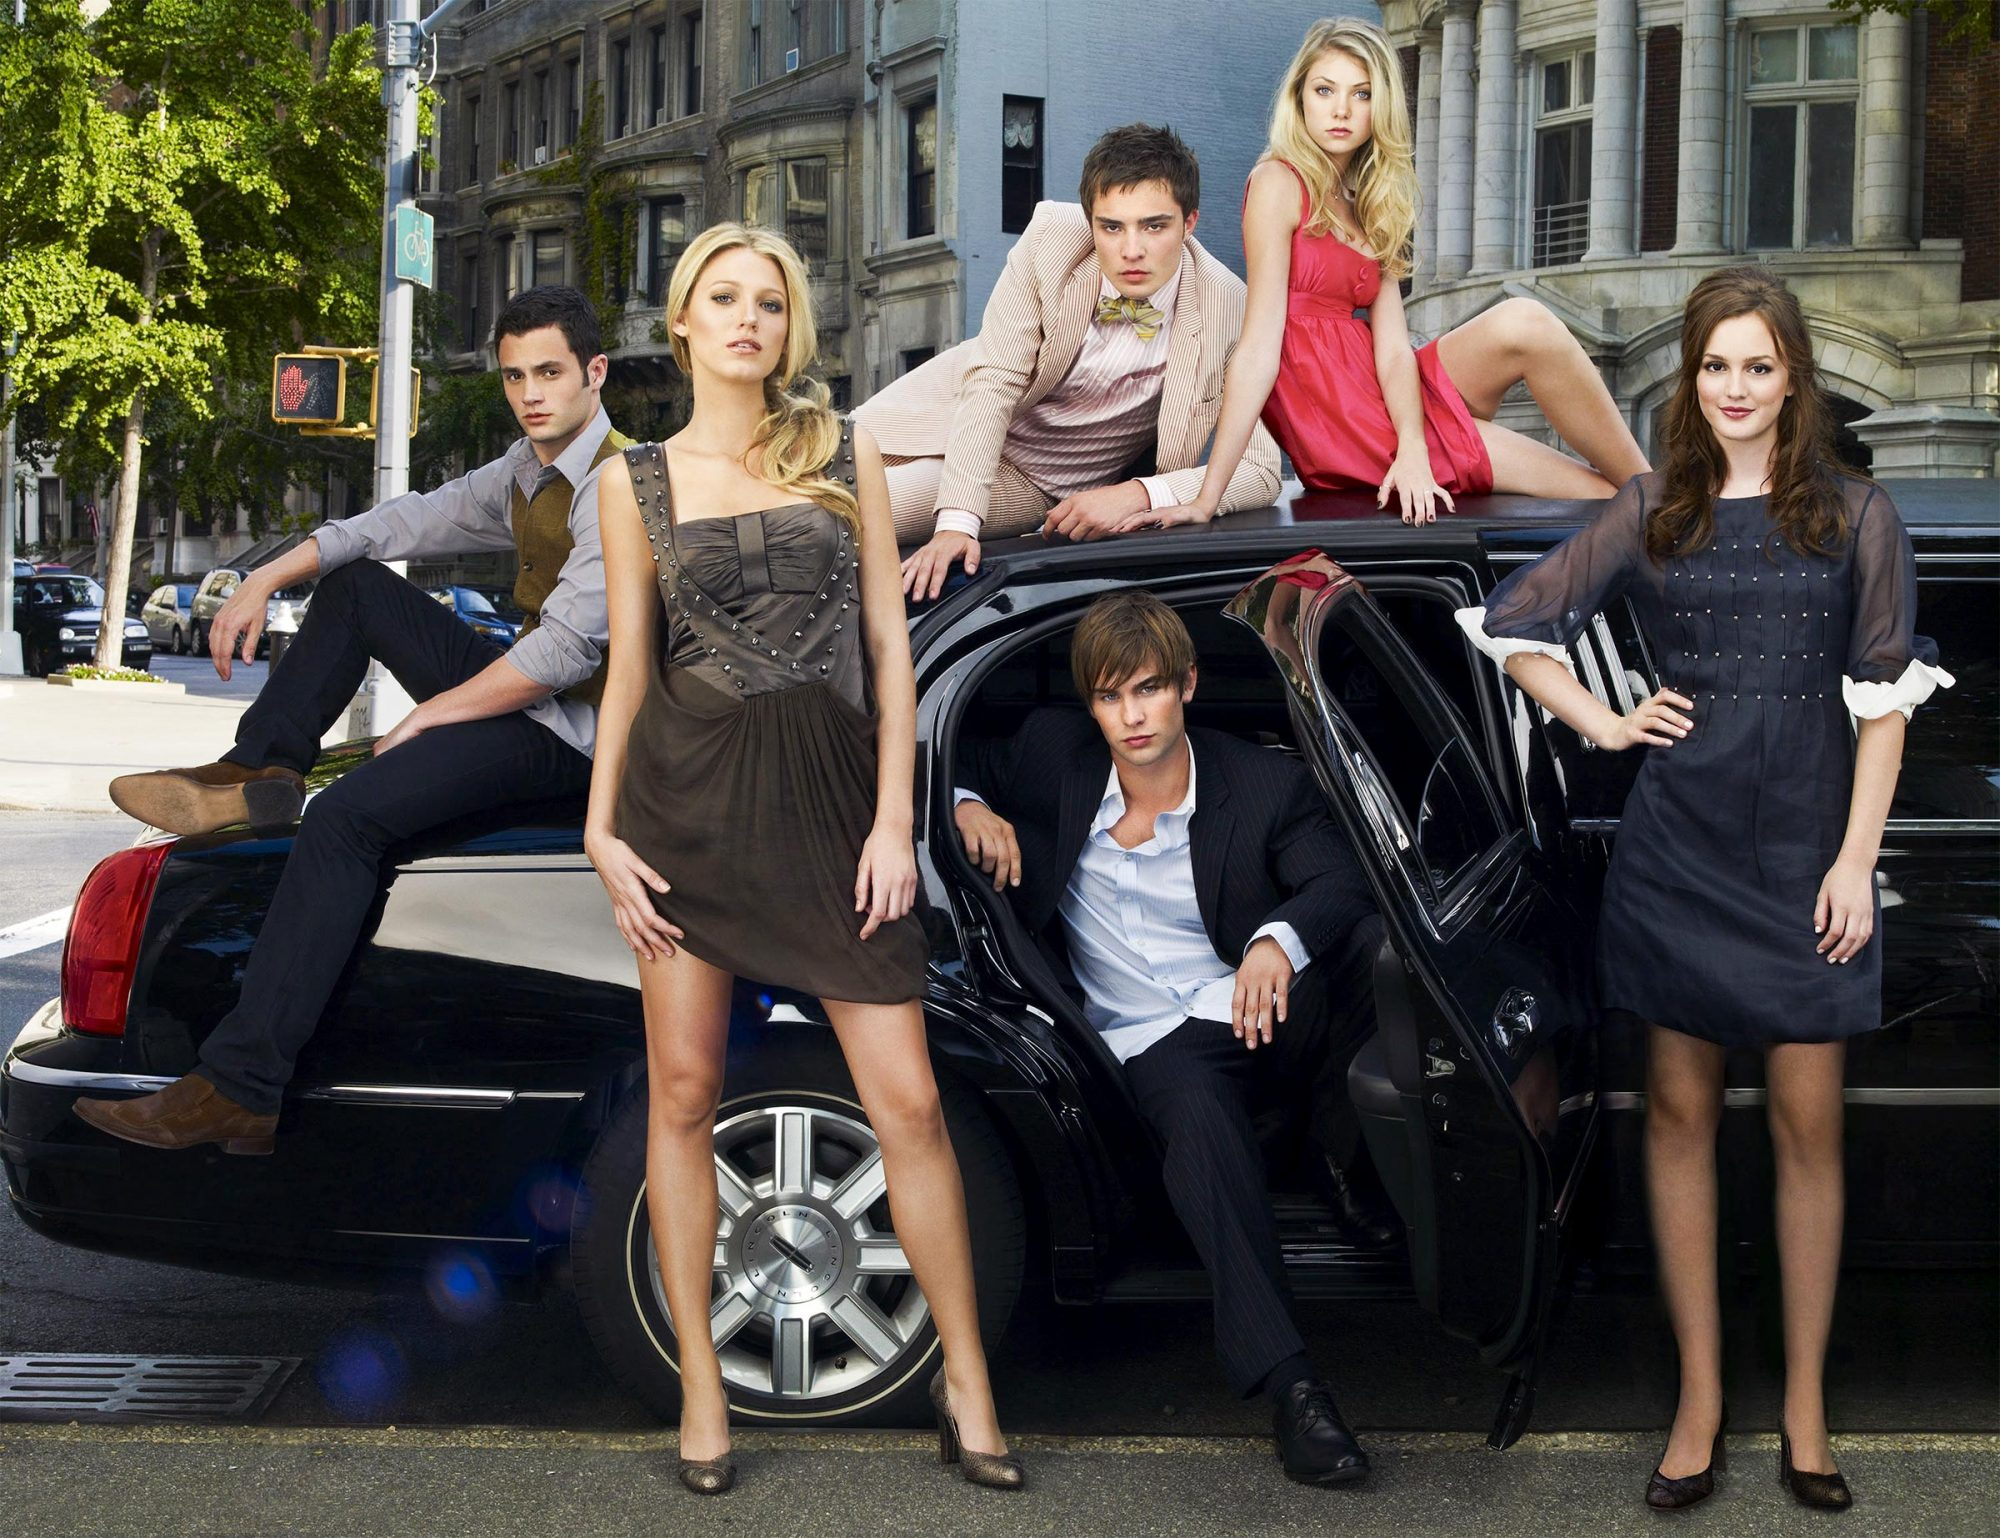 Gossip Girl Reboot Will Feature Cameos from Some OG Cast Members, 'But Not the Series Regulars'